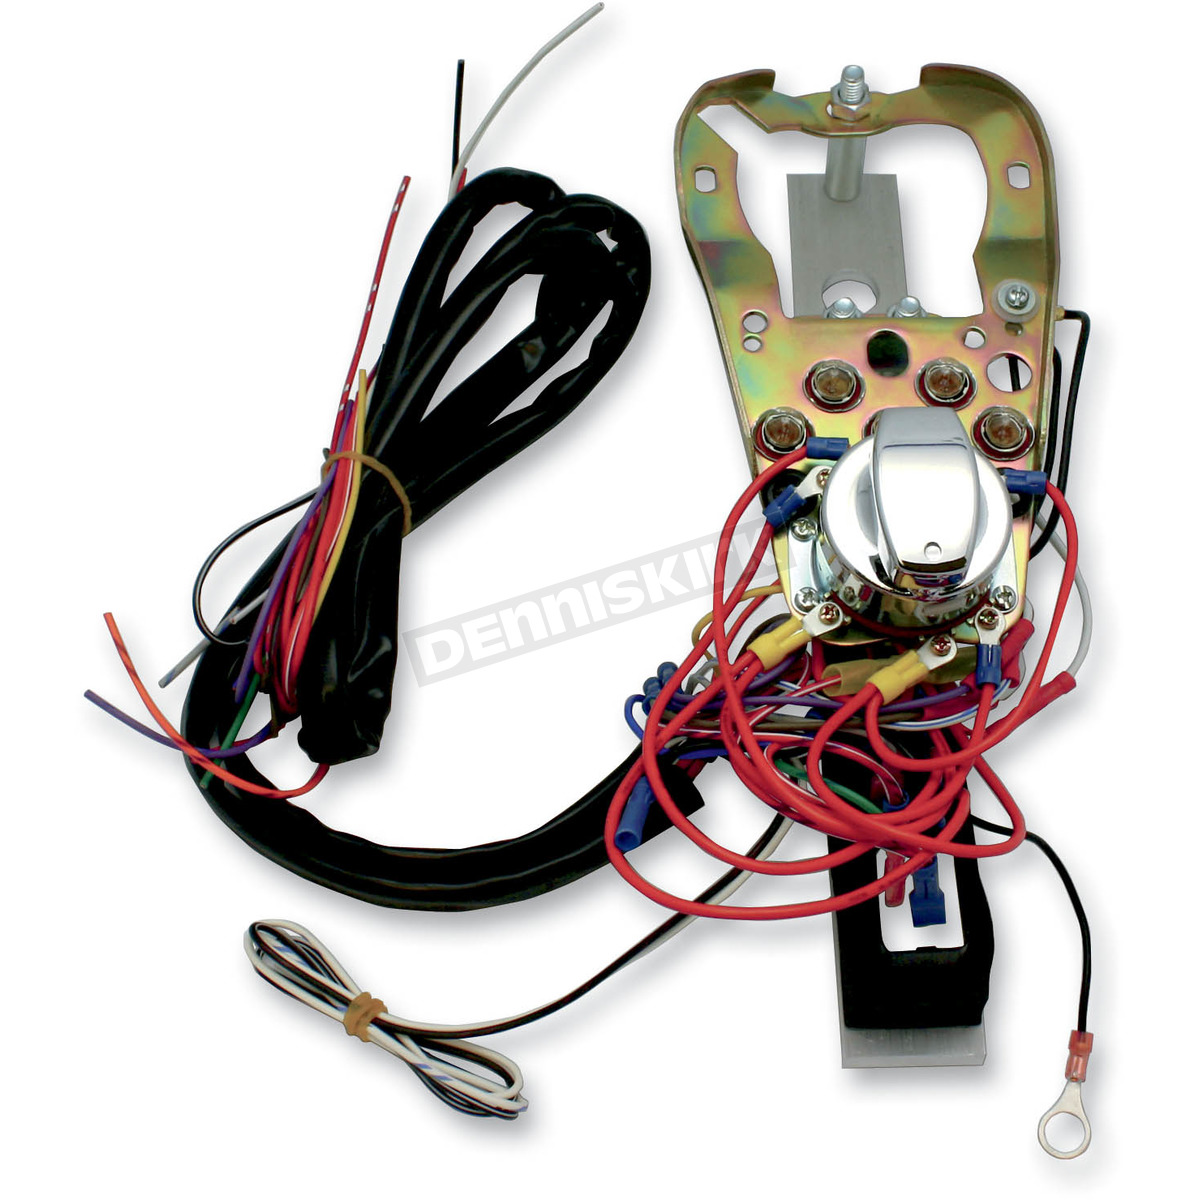 Pro-One Dash Base with Wire Harness Kit - 400909